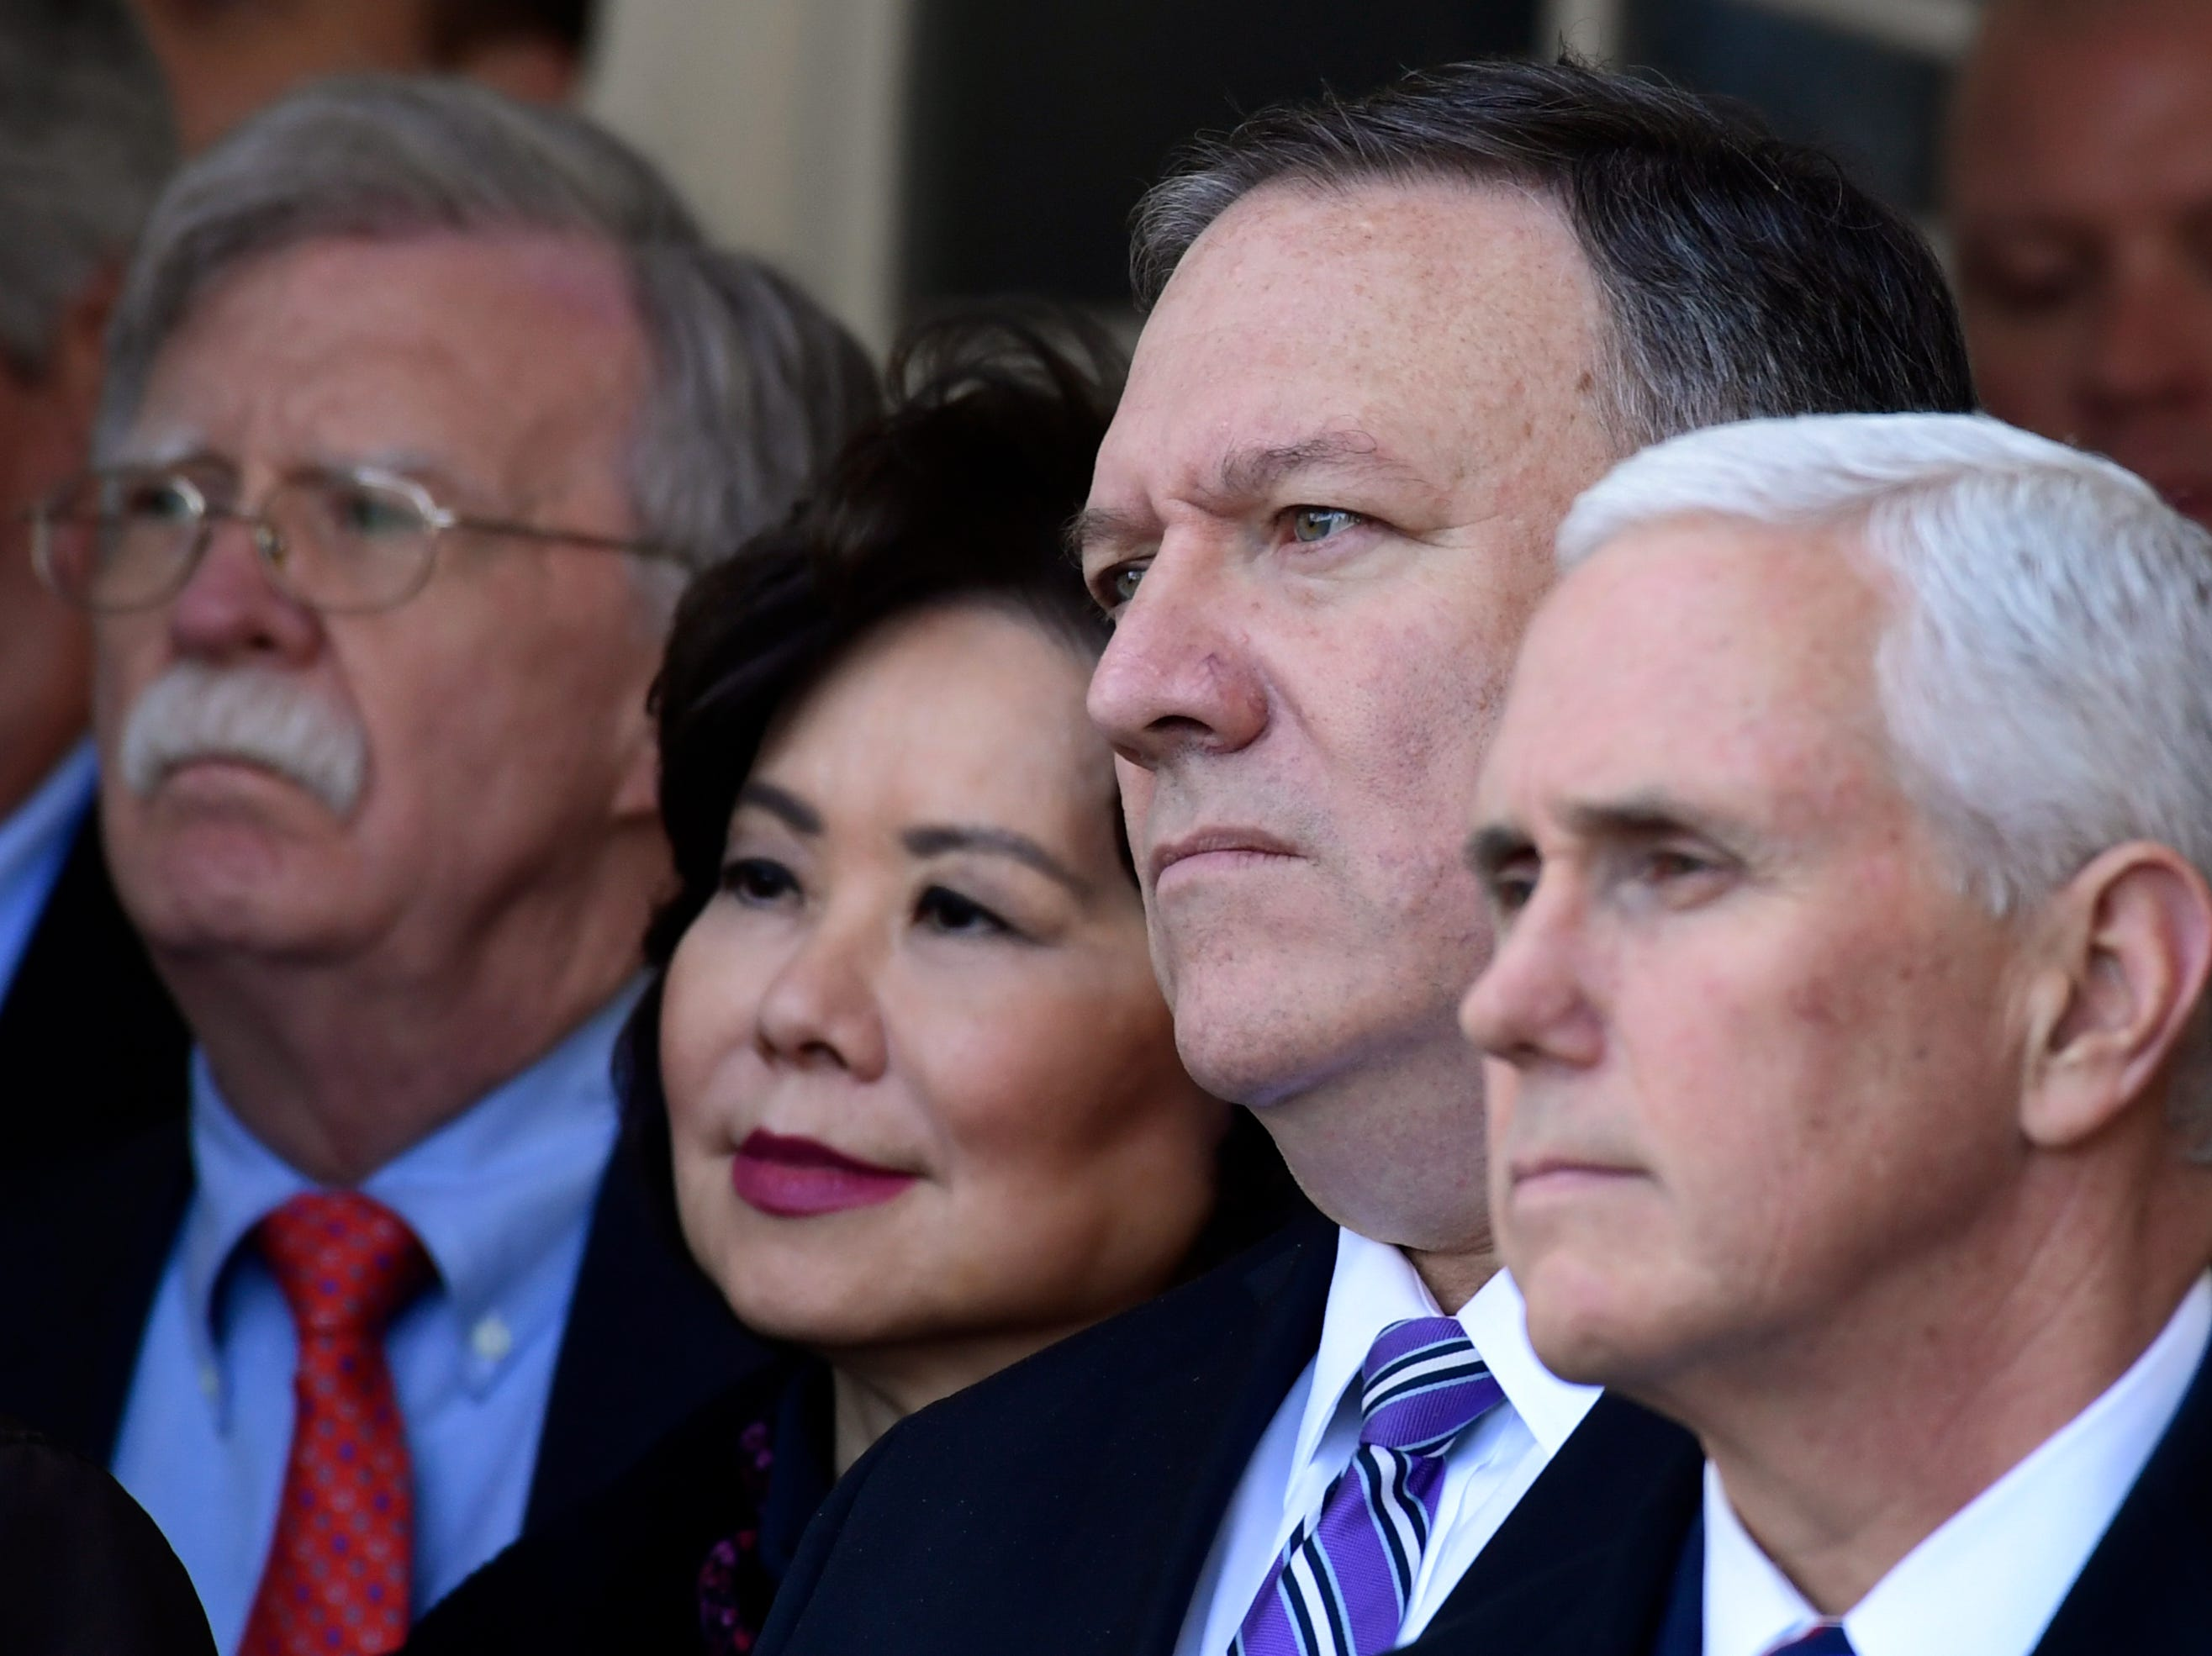 National security adviser John Bolton, left, Transportation Secretary Elaine Chao, second from left, Secretary of State Mike Pompeo, second from right, and Vice President Mike Pence, right, listen as President Donald Trump speaks in the Rose Garden of the White House in Washington, Friday, Jan. 25, 2019, to announce a temporary deal to open the government.